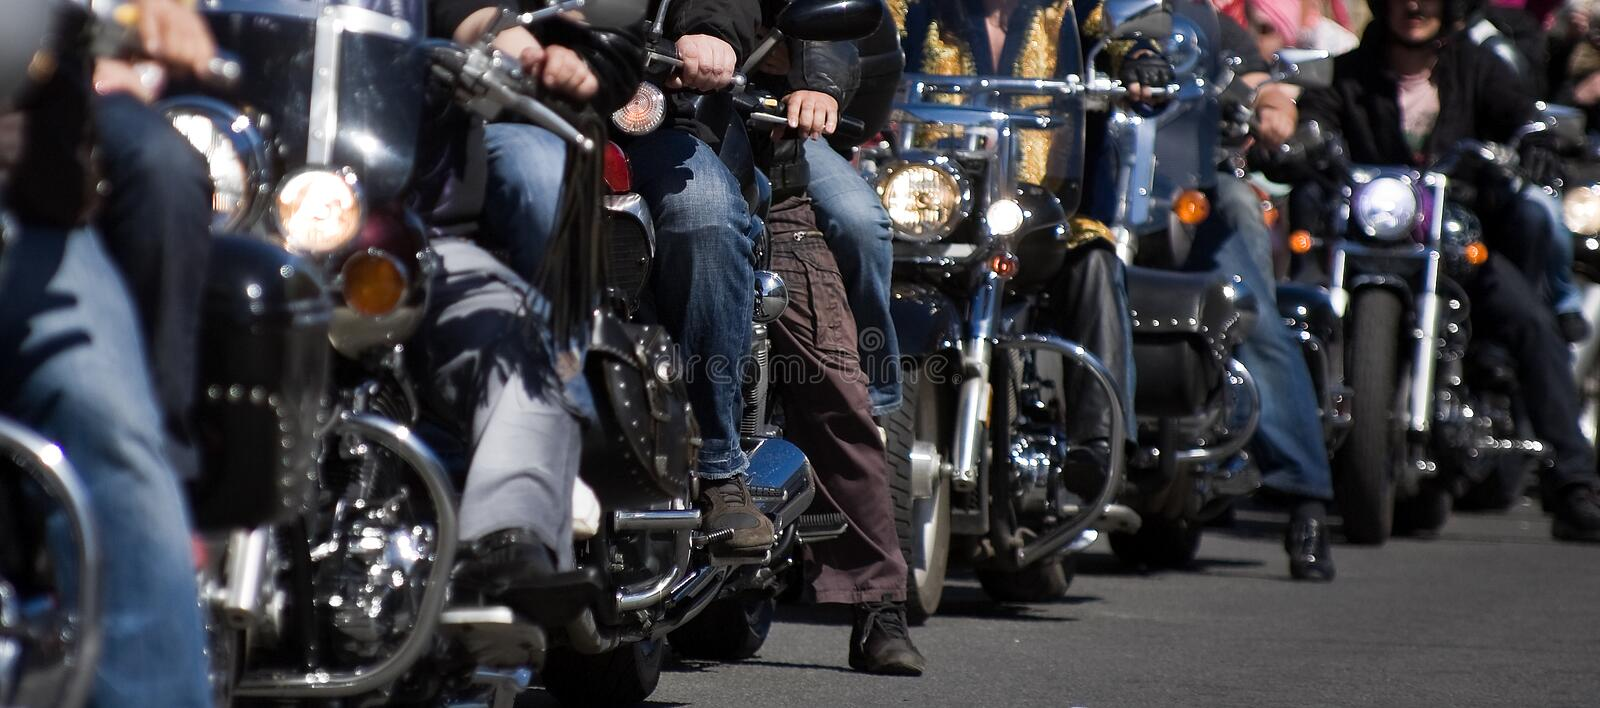 Bike show. Bikers at the bike show - - small depth of field stock image